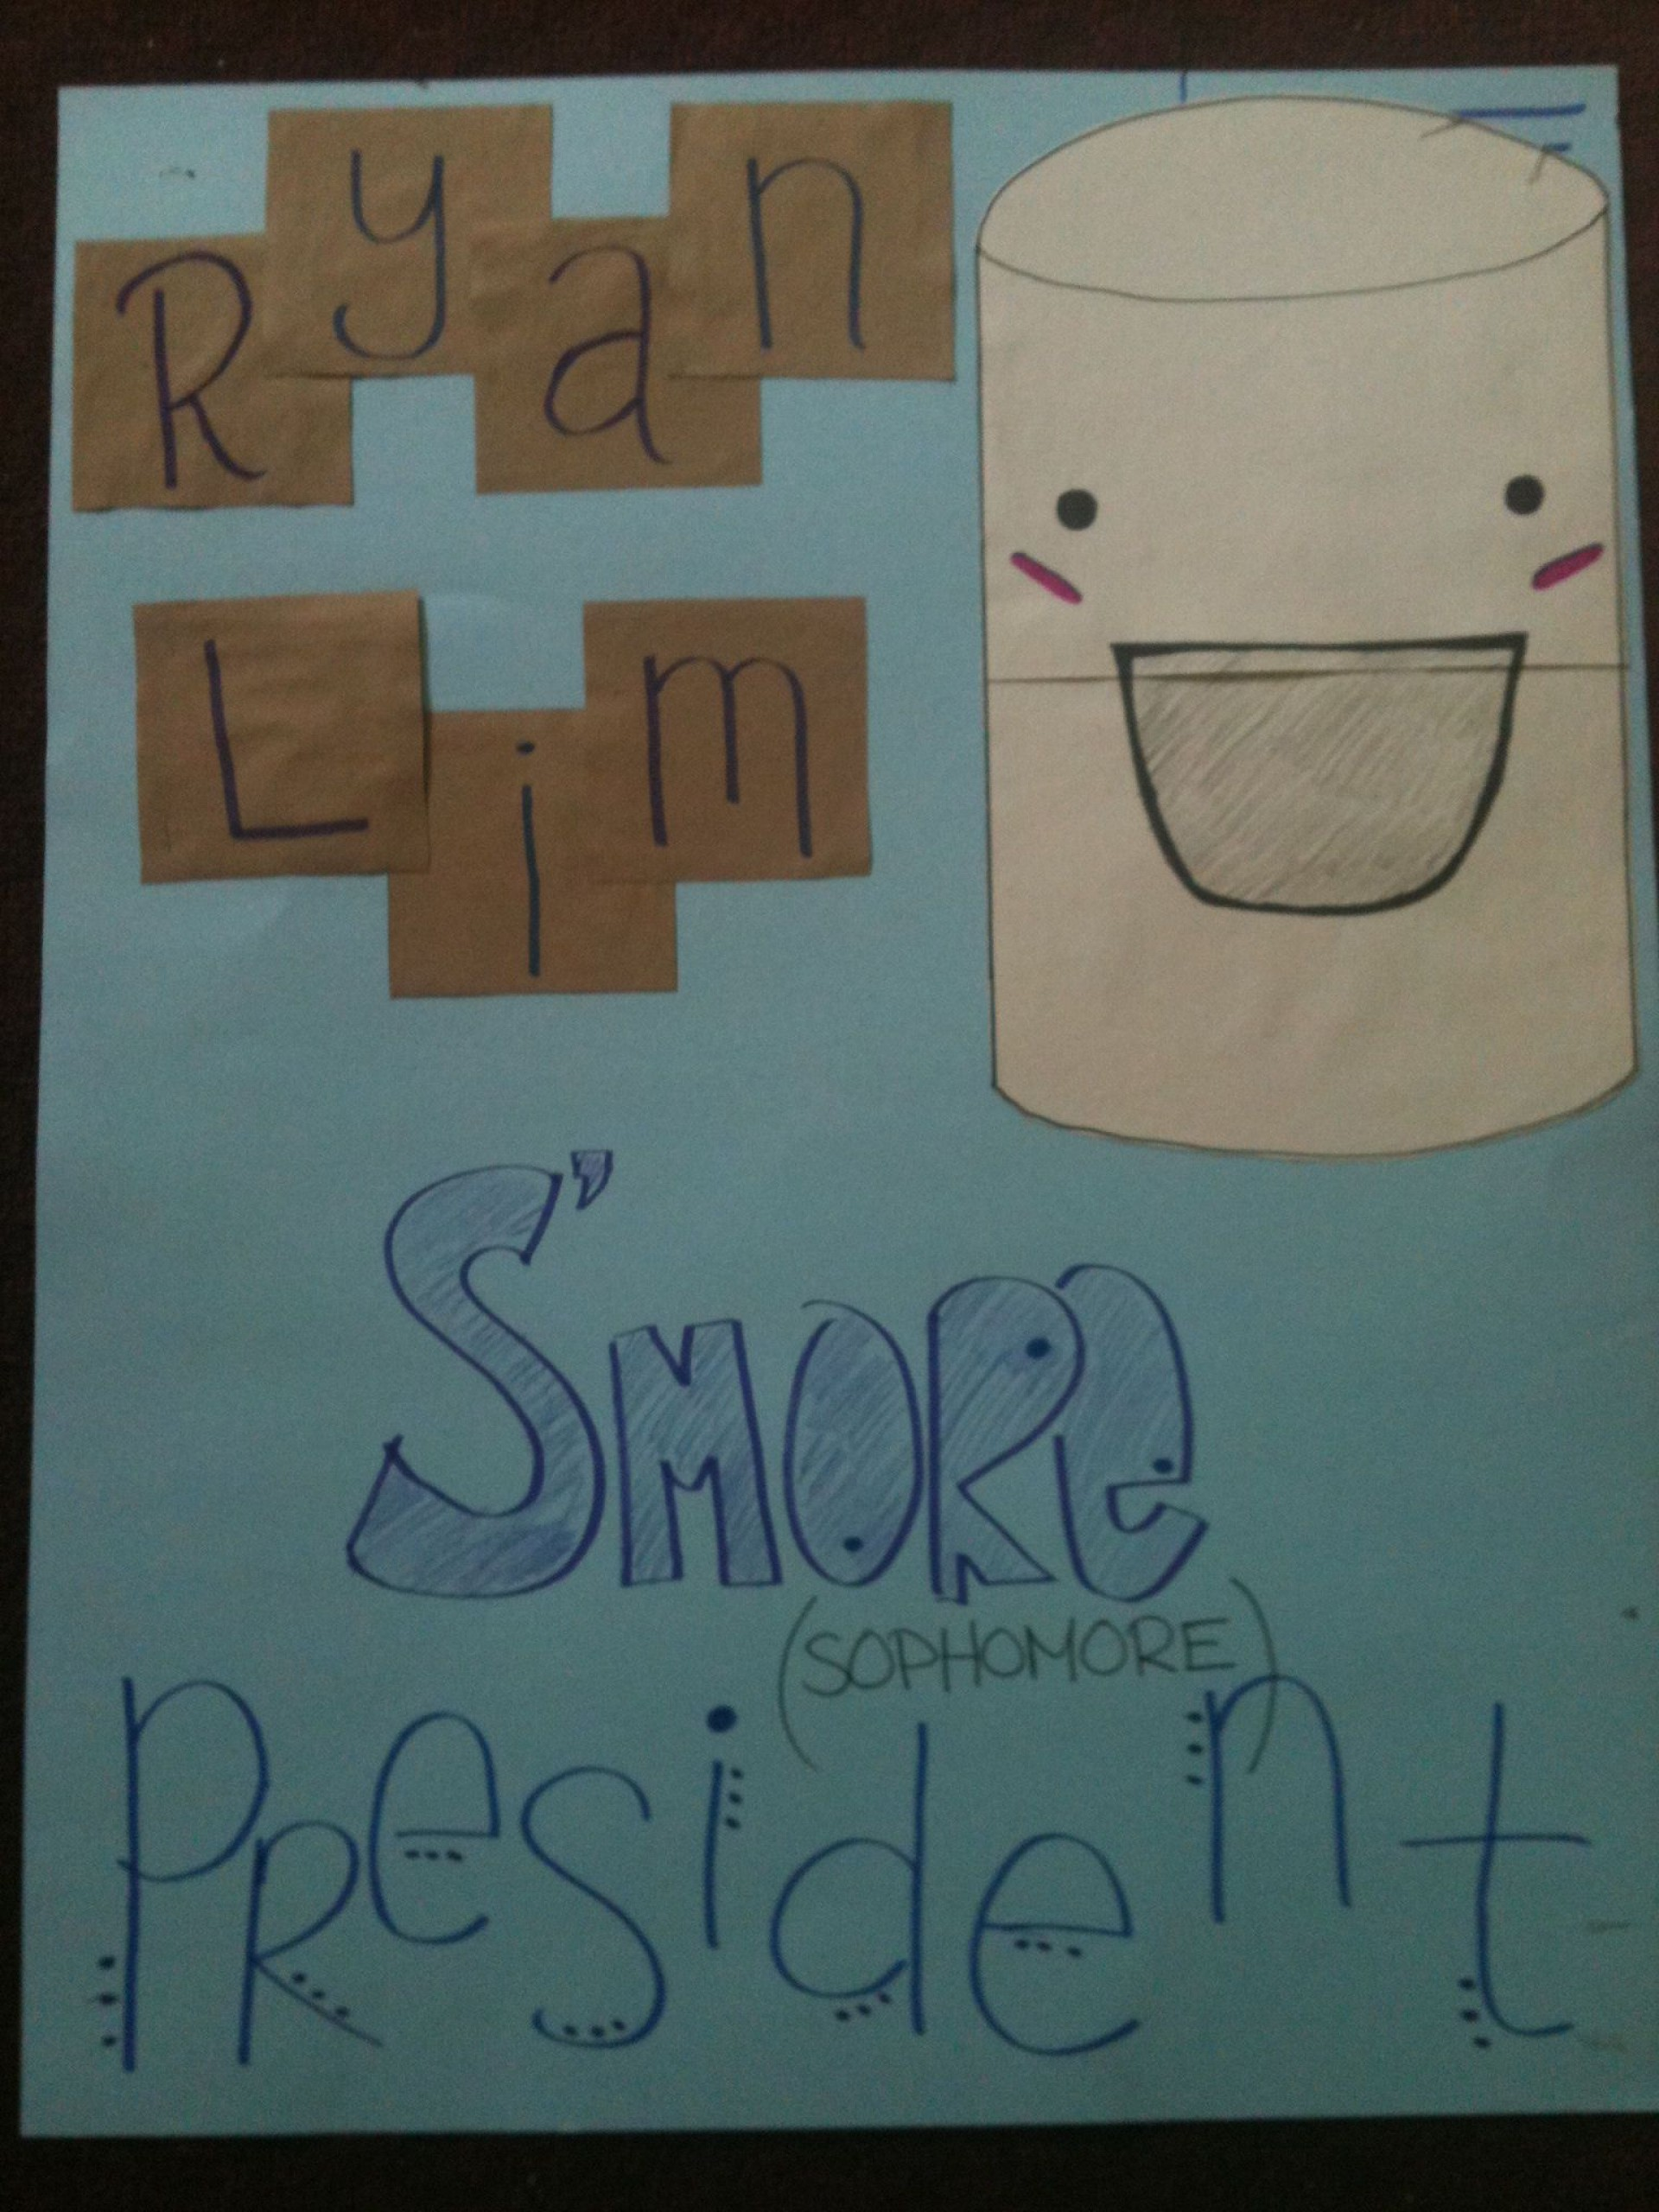 006 Archaicawful Free Student Council Campaign Poster Template Design 1920